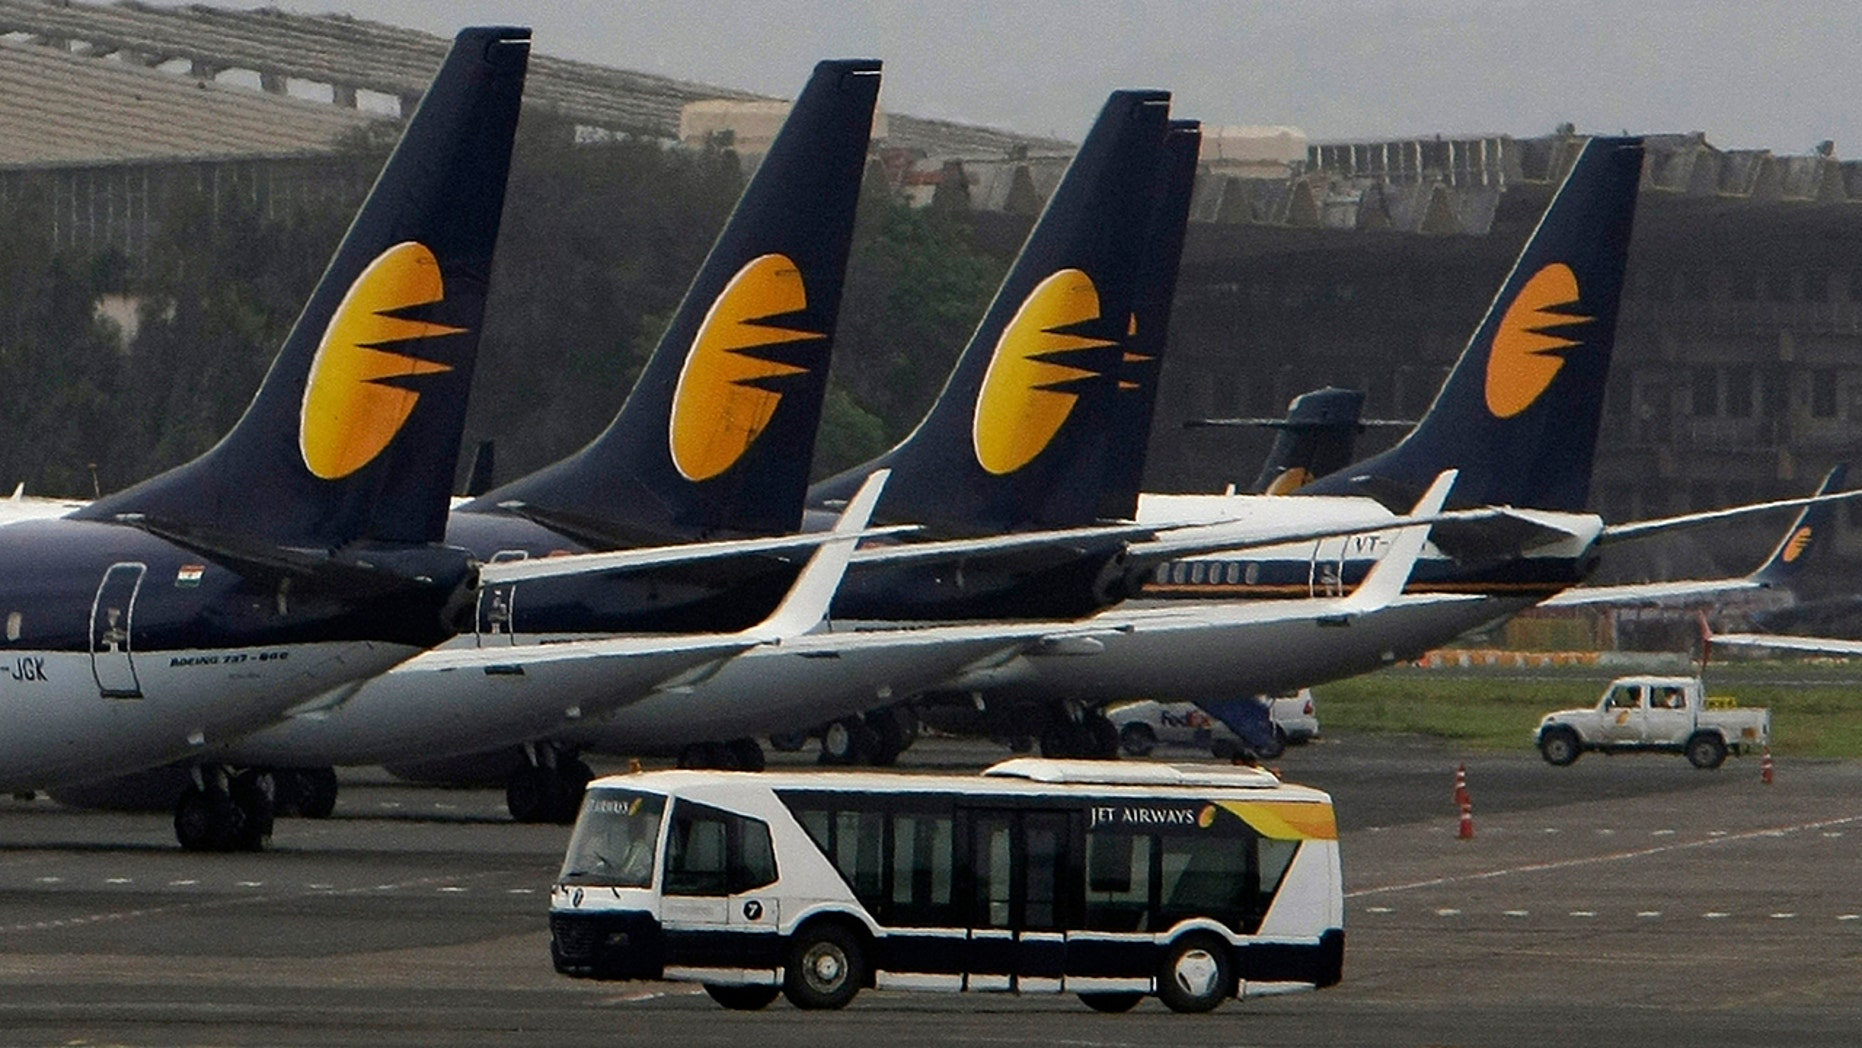 Dozens of passengers aboard the Jet Airways aircraft required medical assistance following the flight.